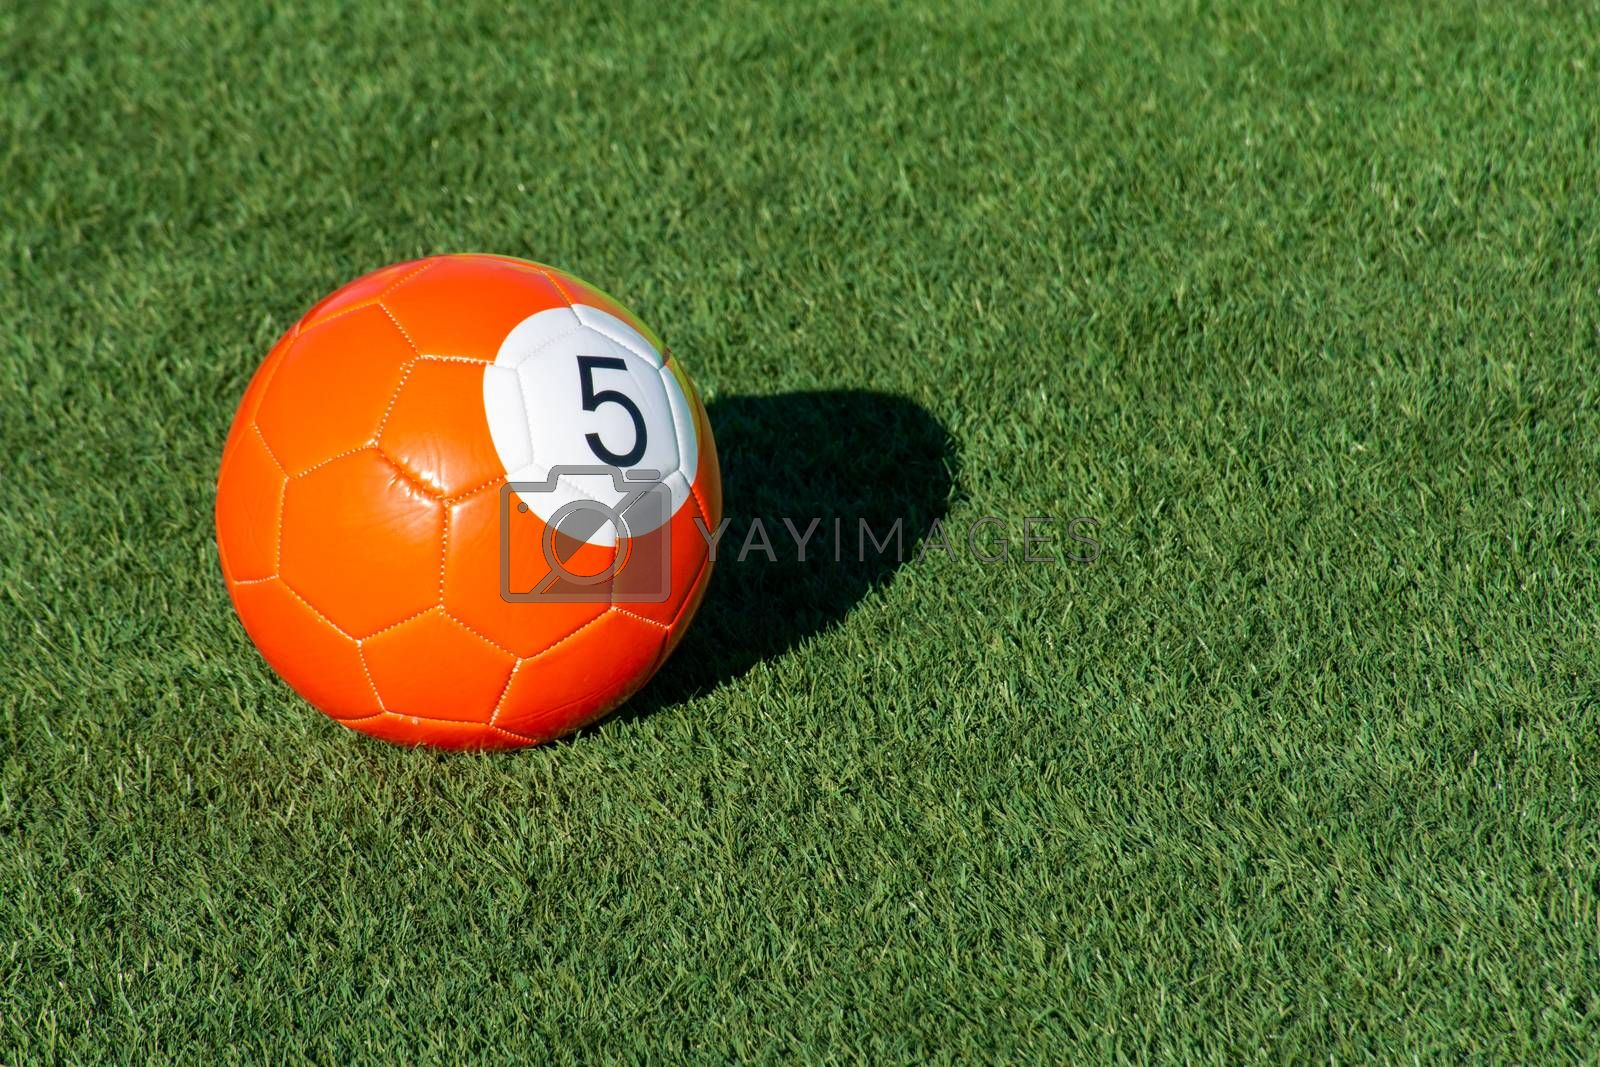 Bright orange number 5 soccer billiards or pool ball on green grass with a shadow and copy space. Concept of sports, recreation and childhood fun.